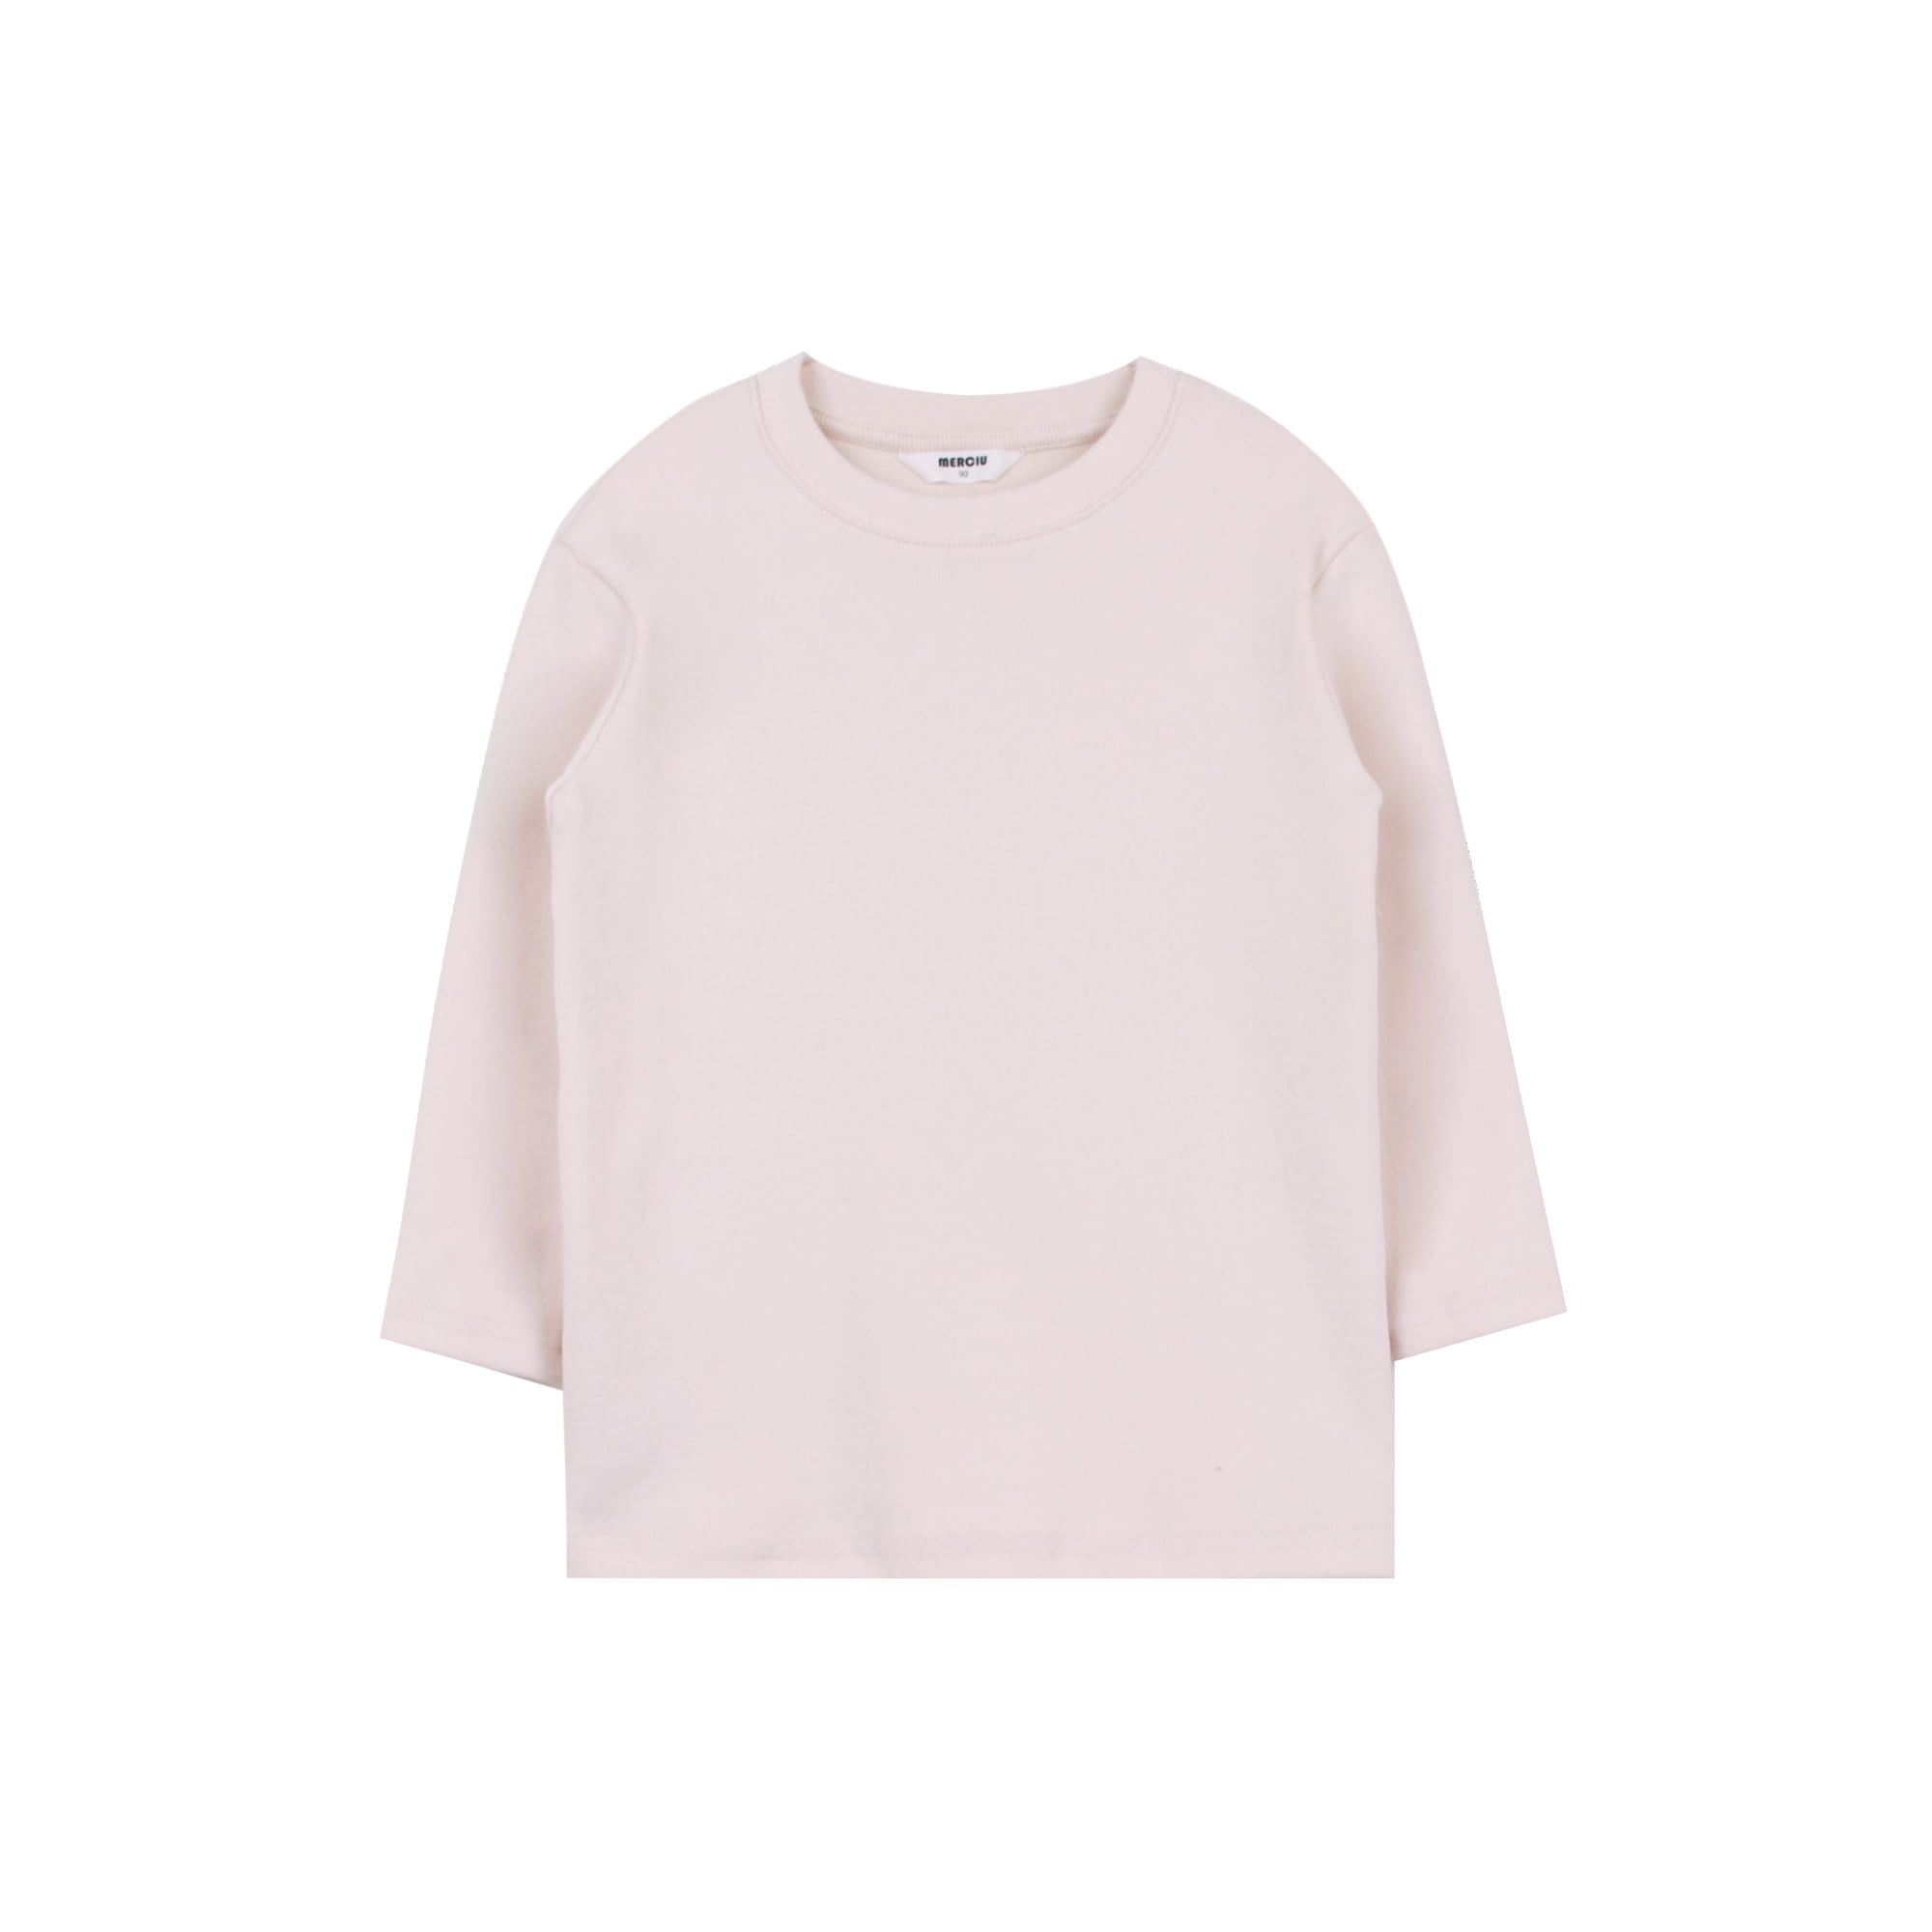 Napping long t - shirt - Ivory (3차 입고, 당일발송)